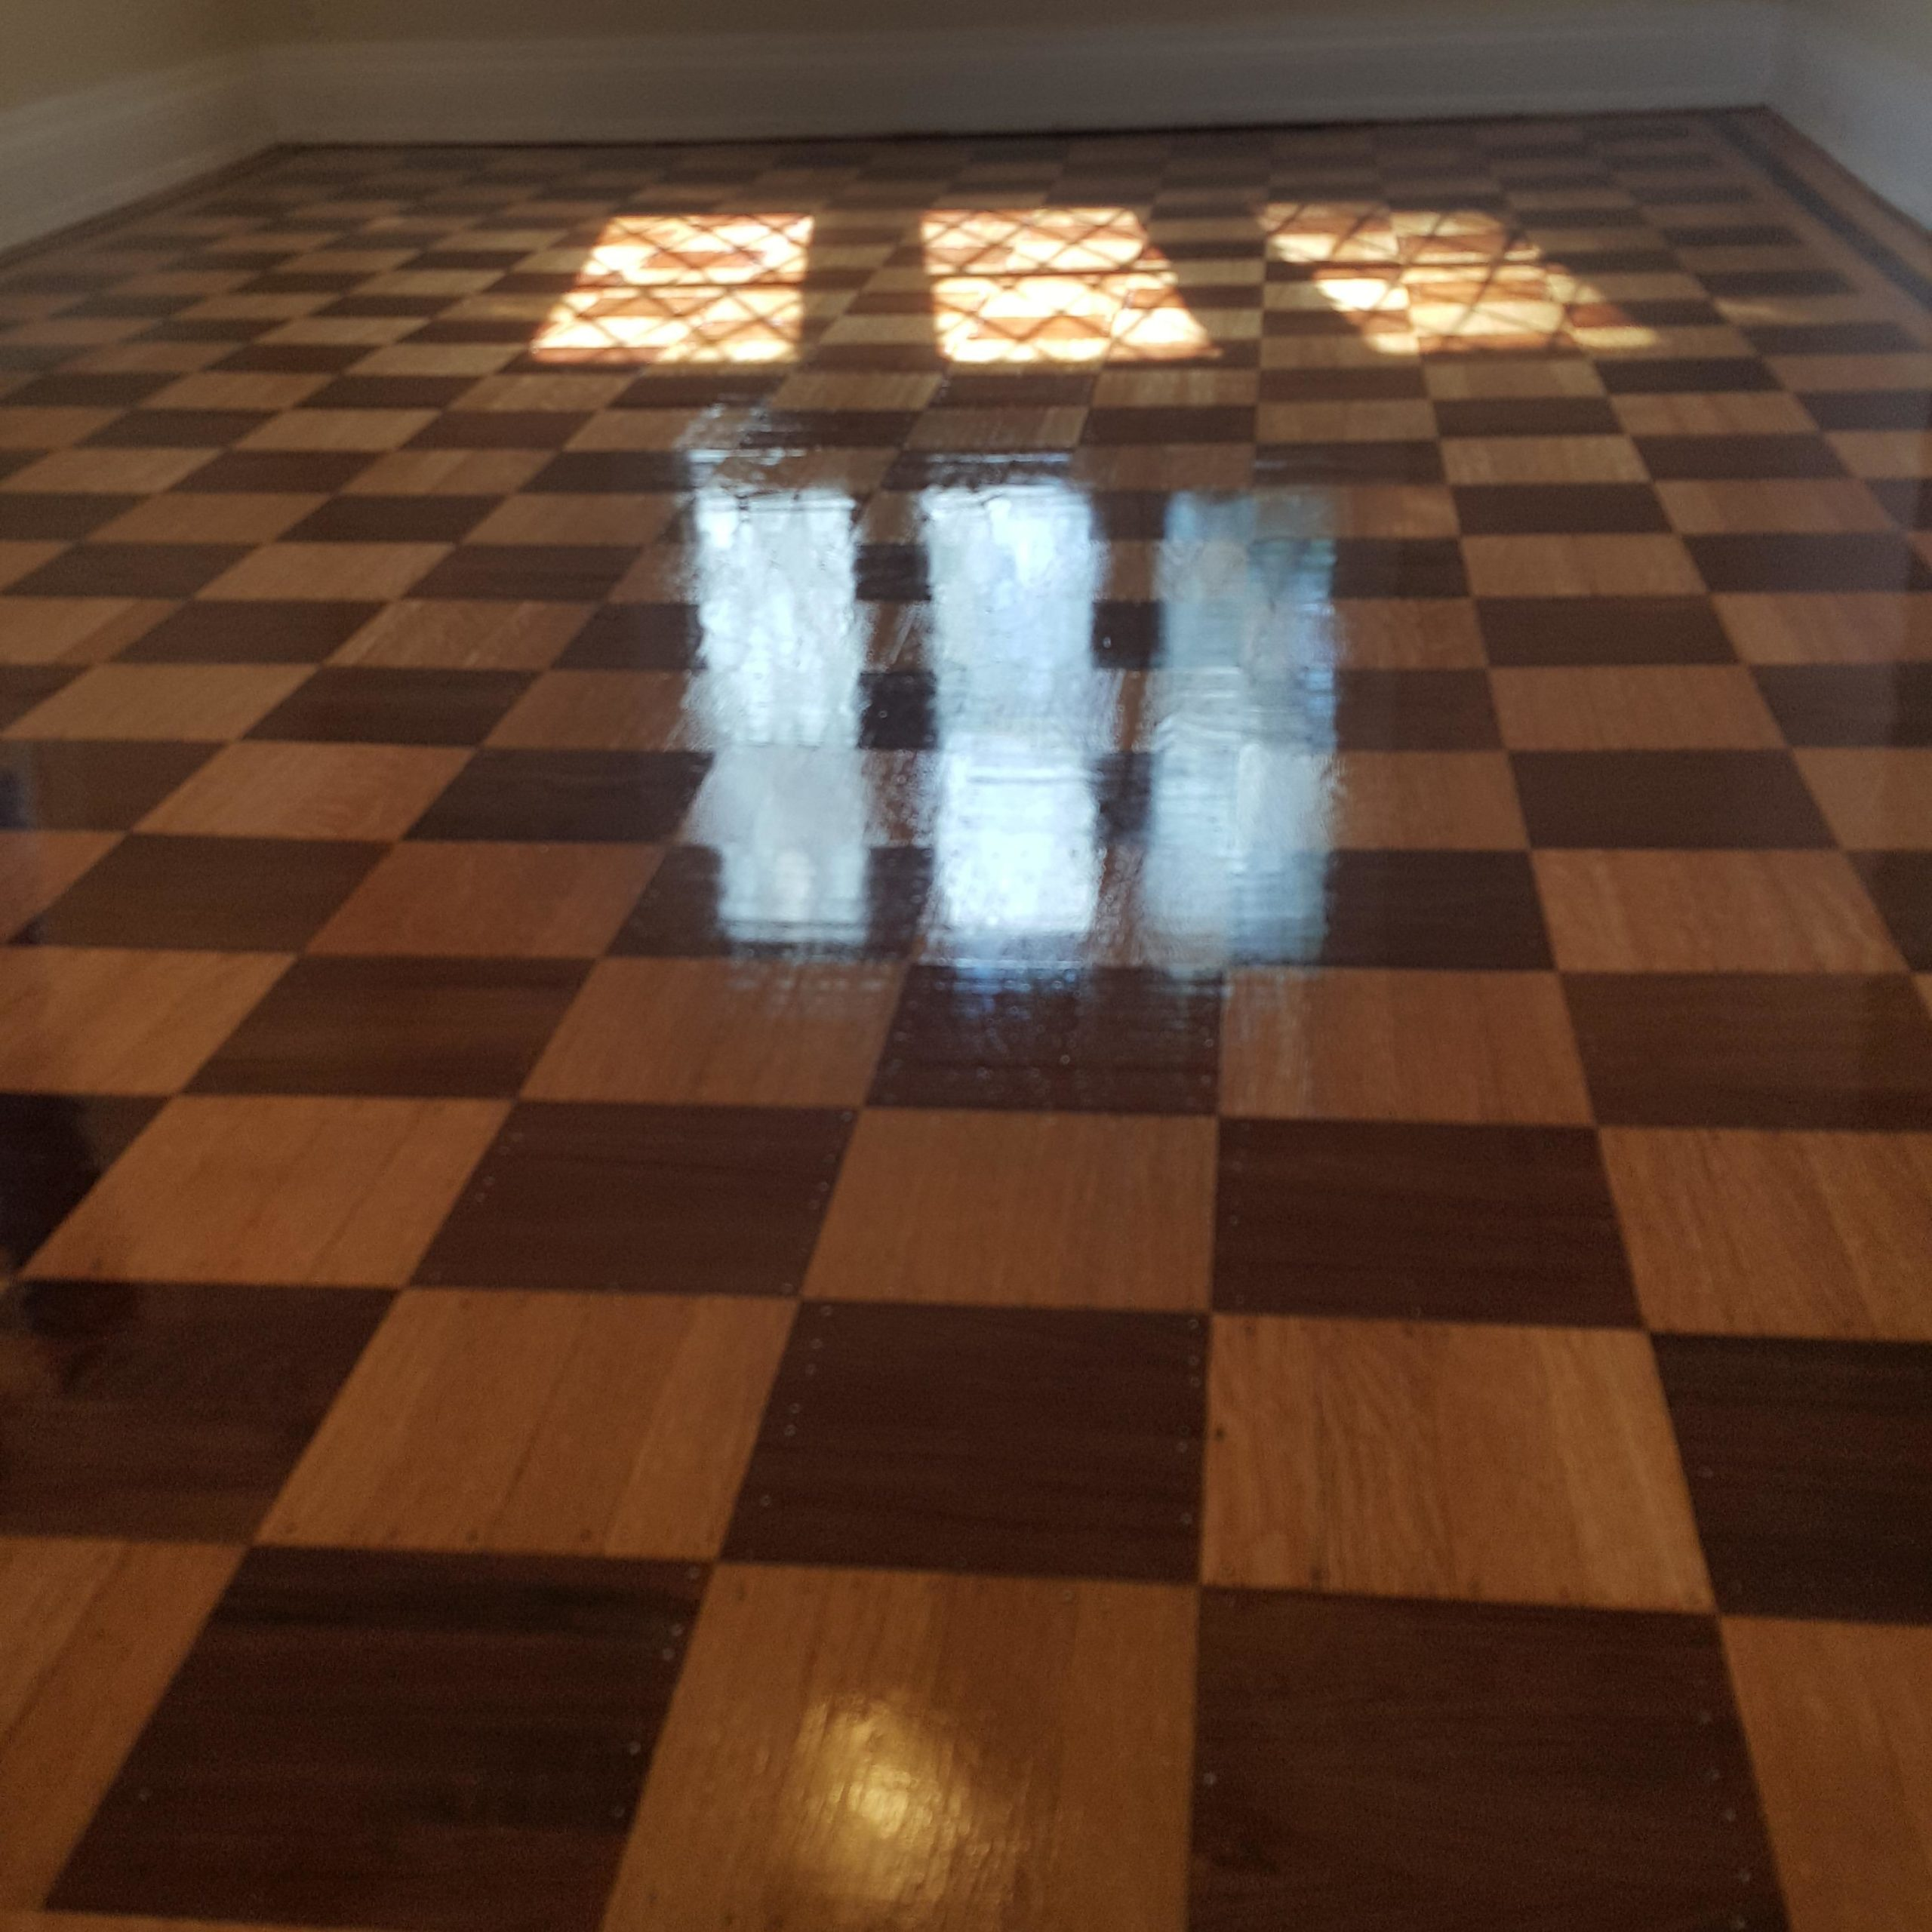 Lockwood Floors LLC